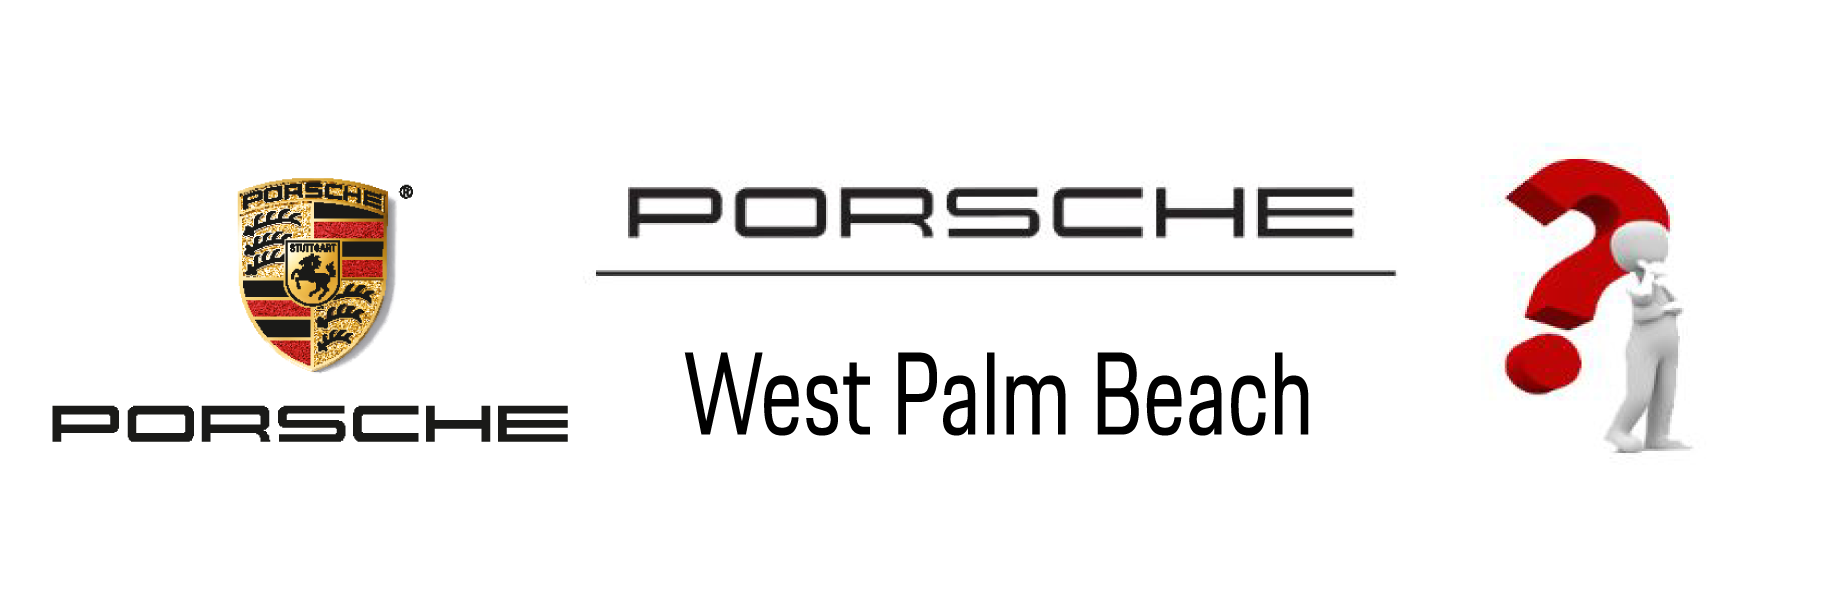 Porsche_WPB_FAQpage